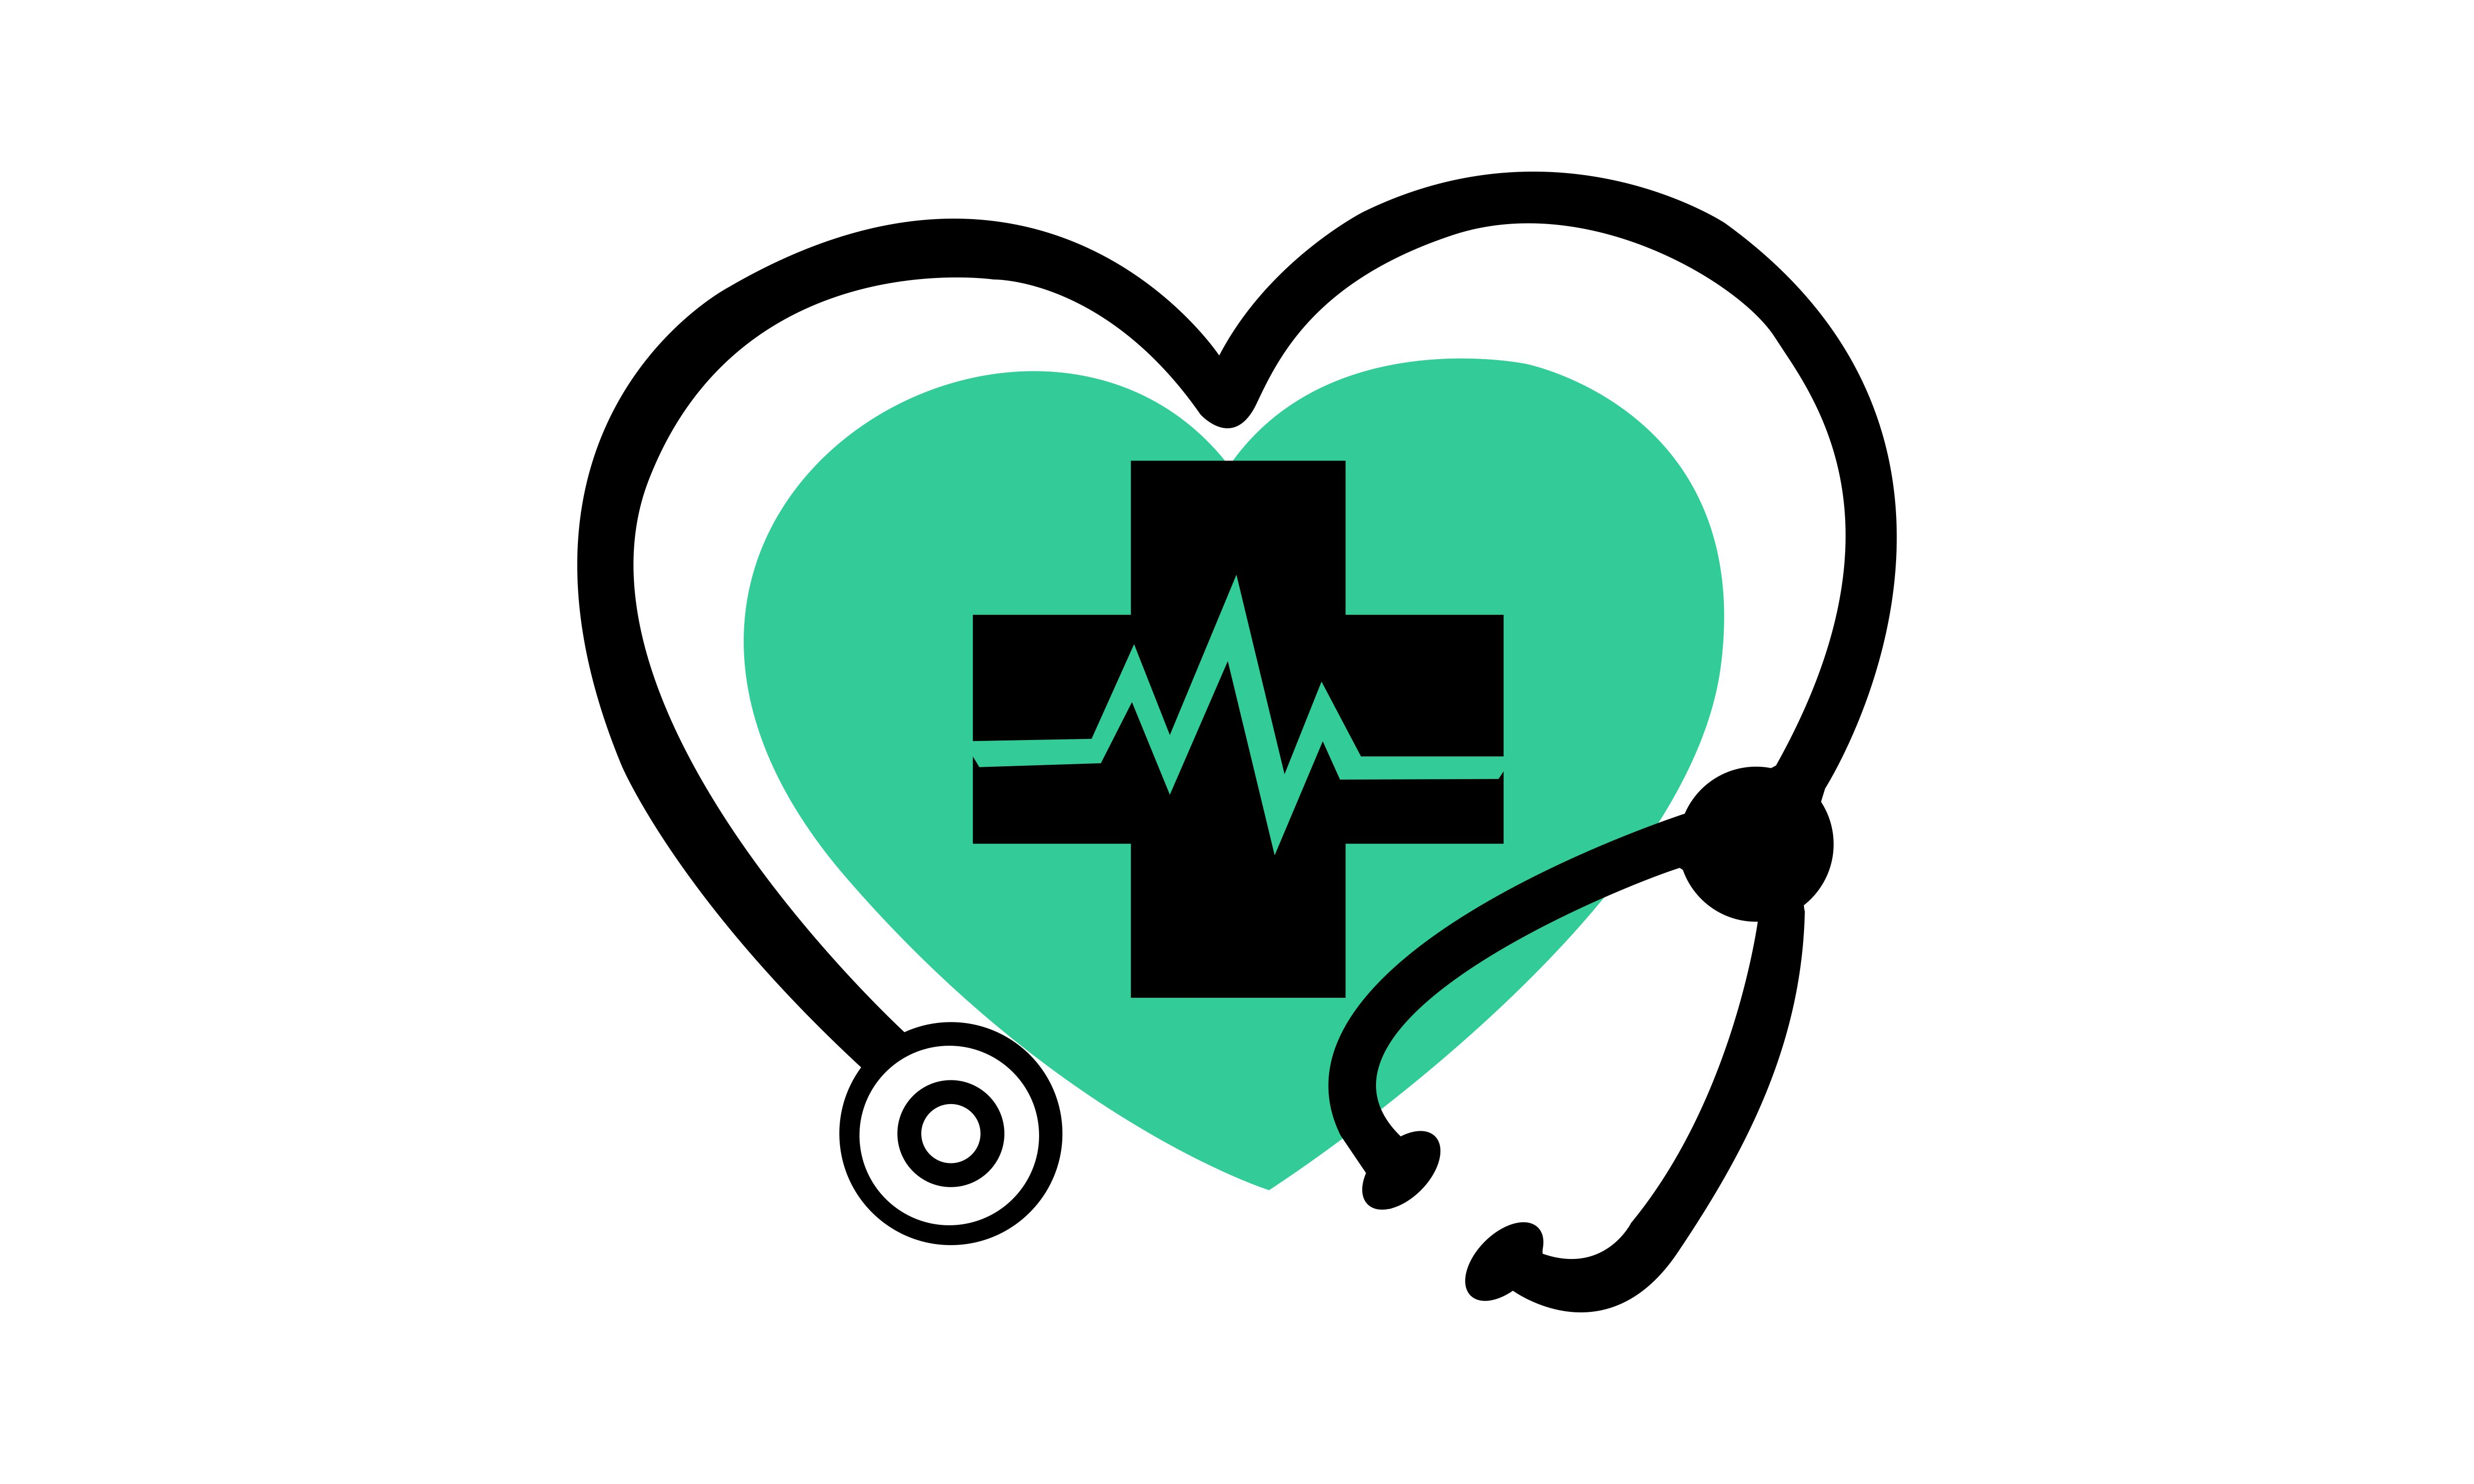 Download Free Medical Stethoscope Heart Logo Graphic By 2qnah Creative Fabrica for Cricut Explore, Silhouette and other cutting machines.